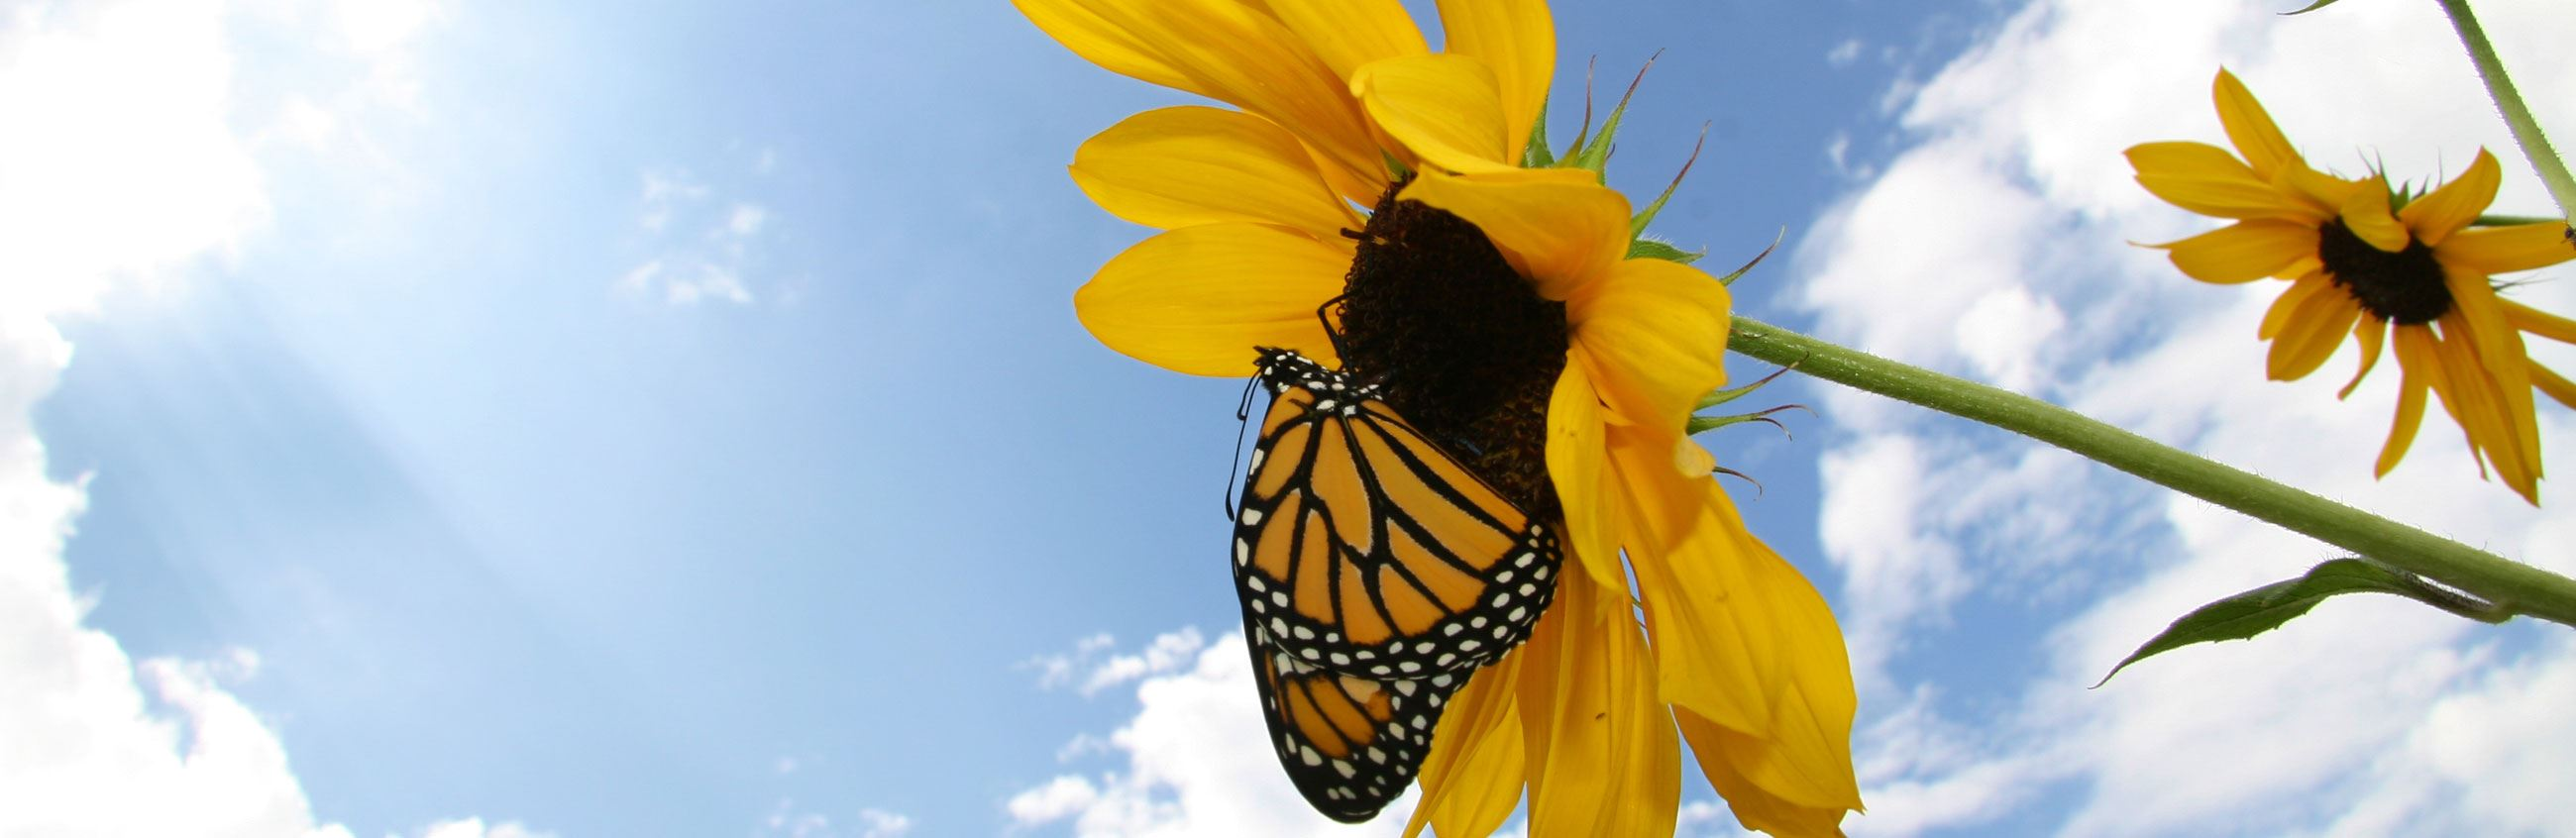 butterfly on sunflower with blue skies